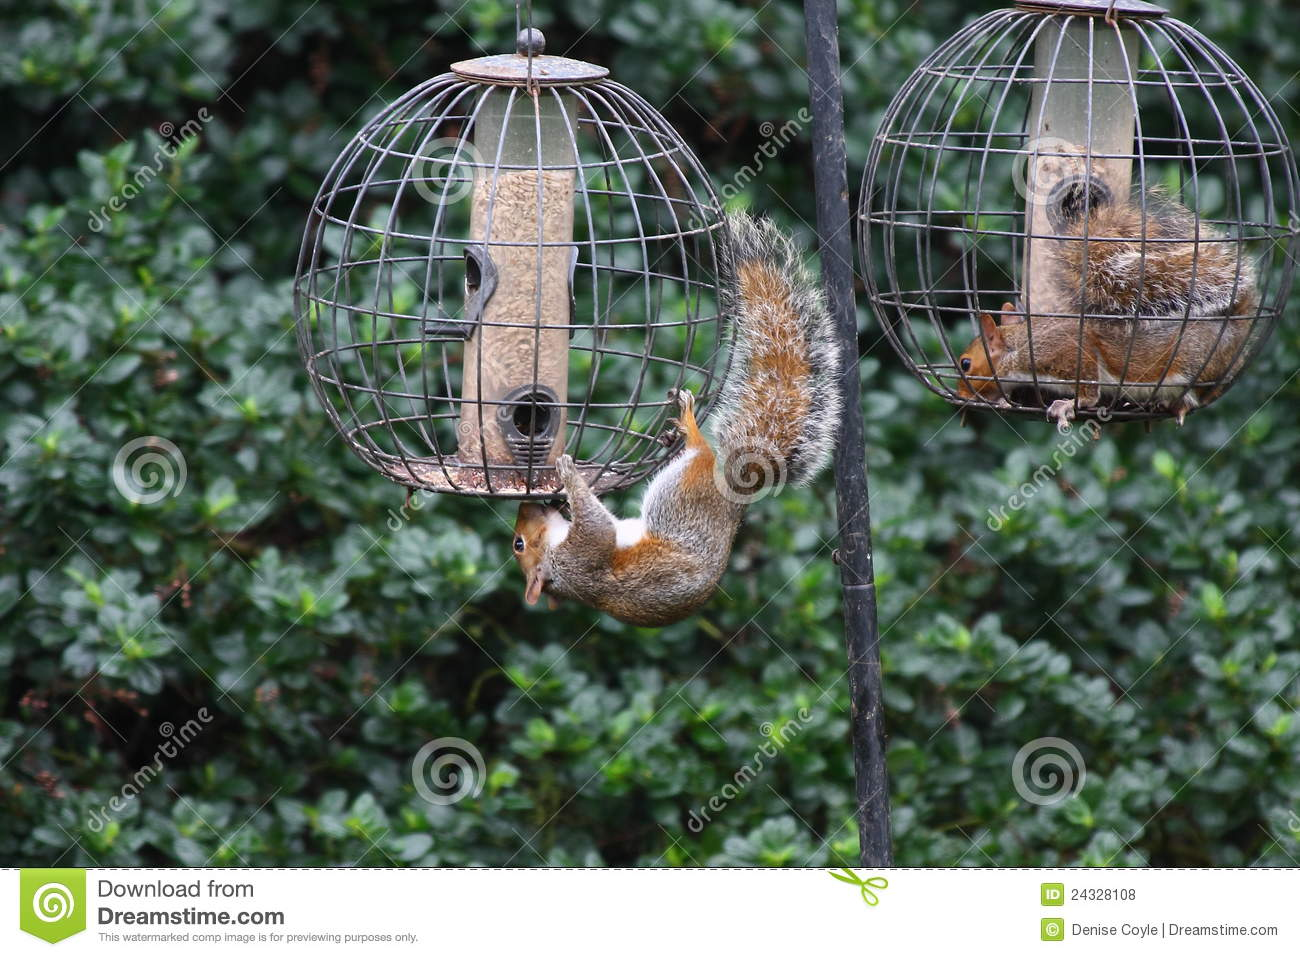 Diy Bird Feeder Cage Squirrels Invading Bird Feeders Stock Photo Image Of